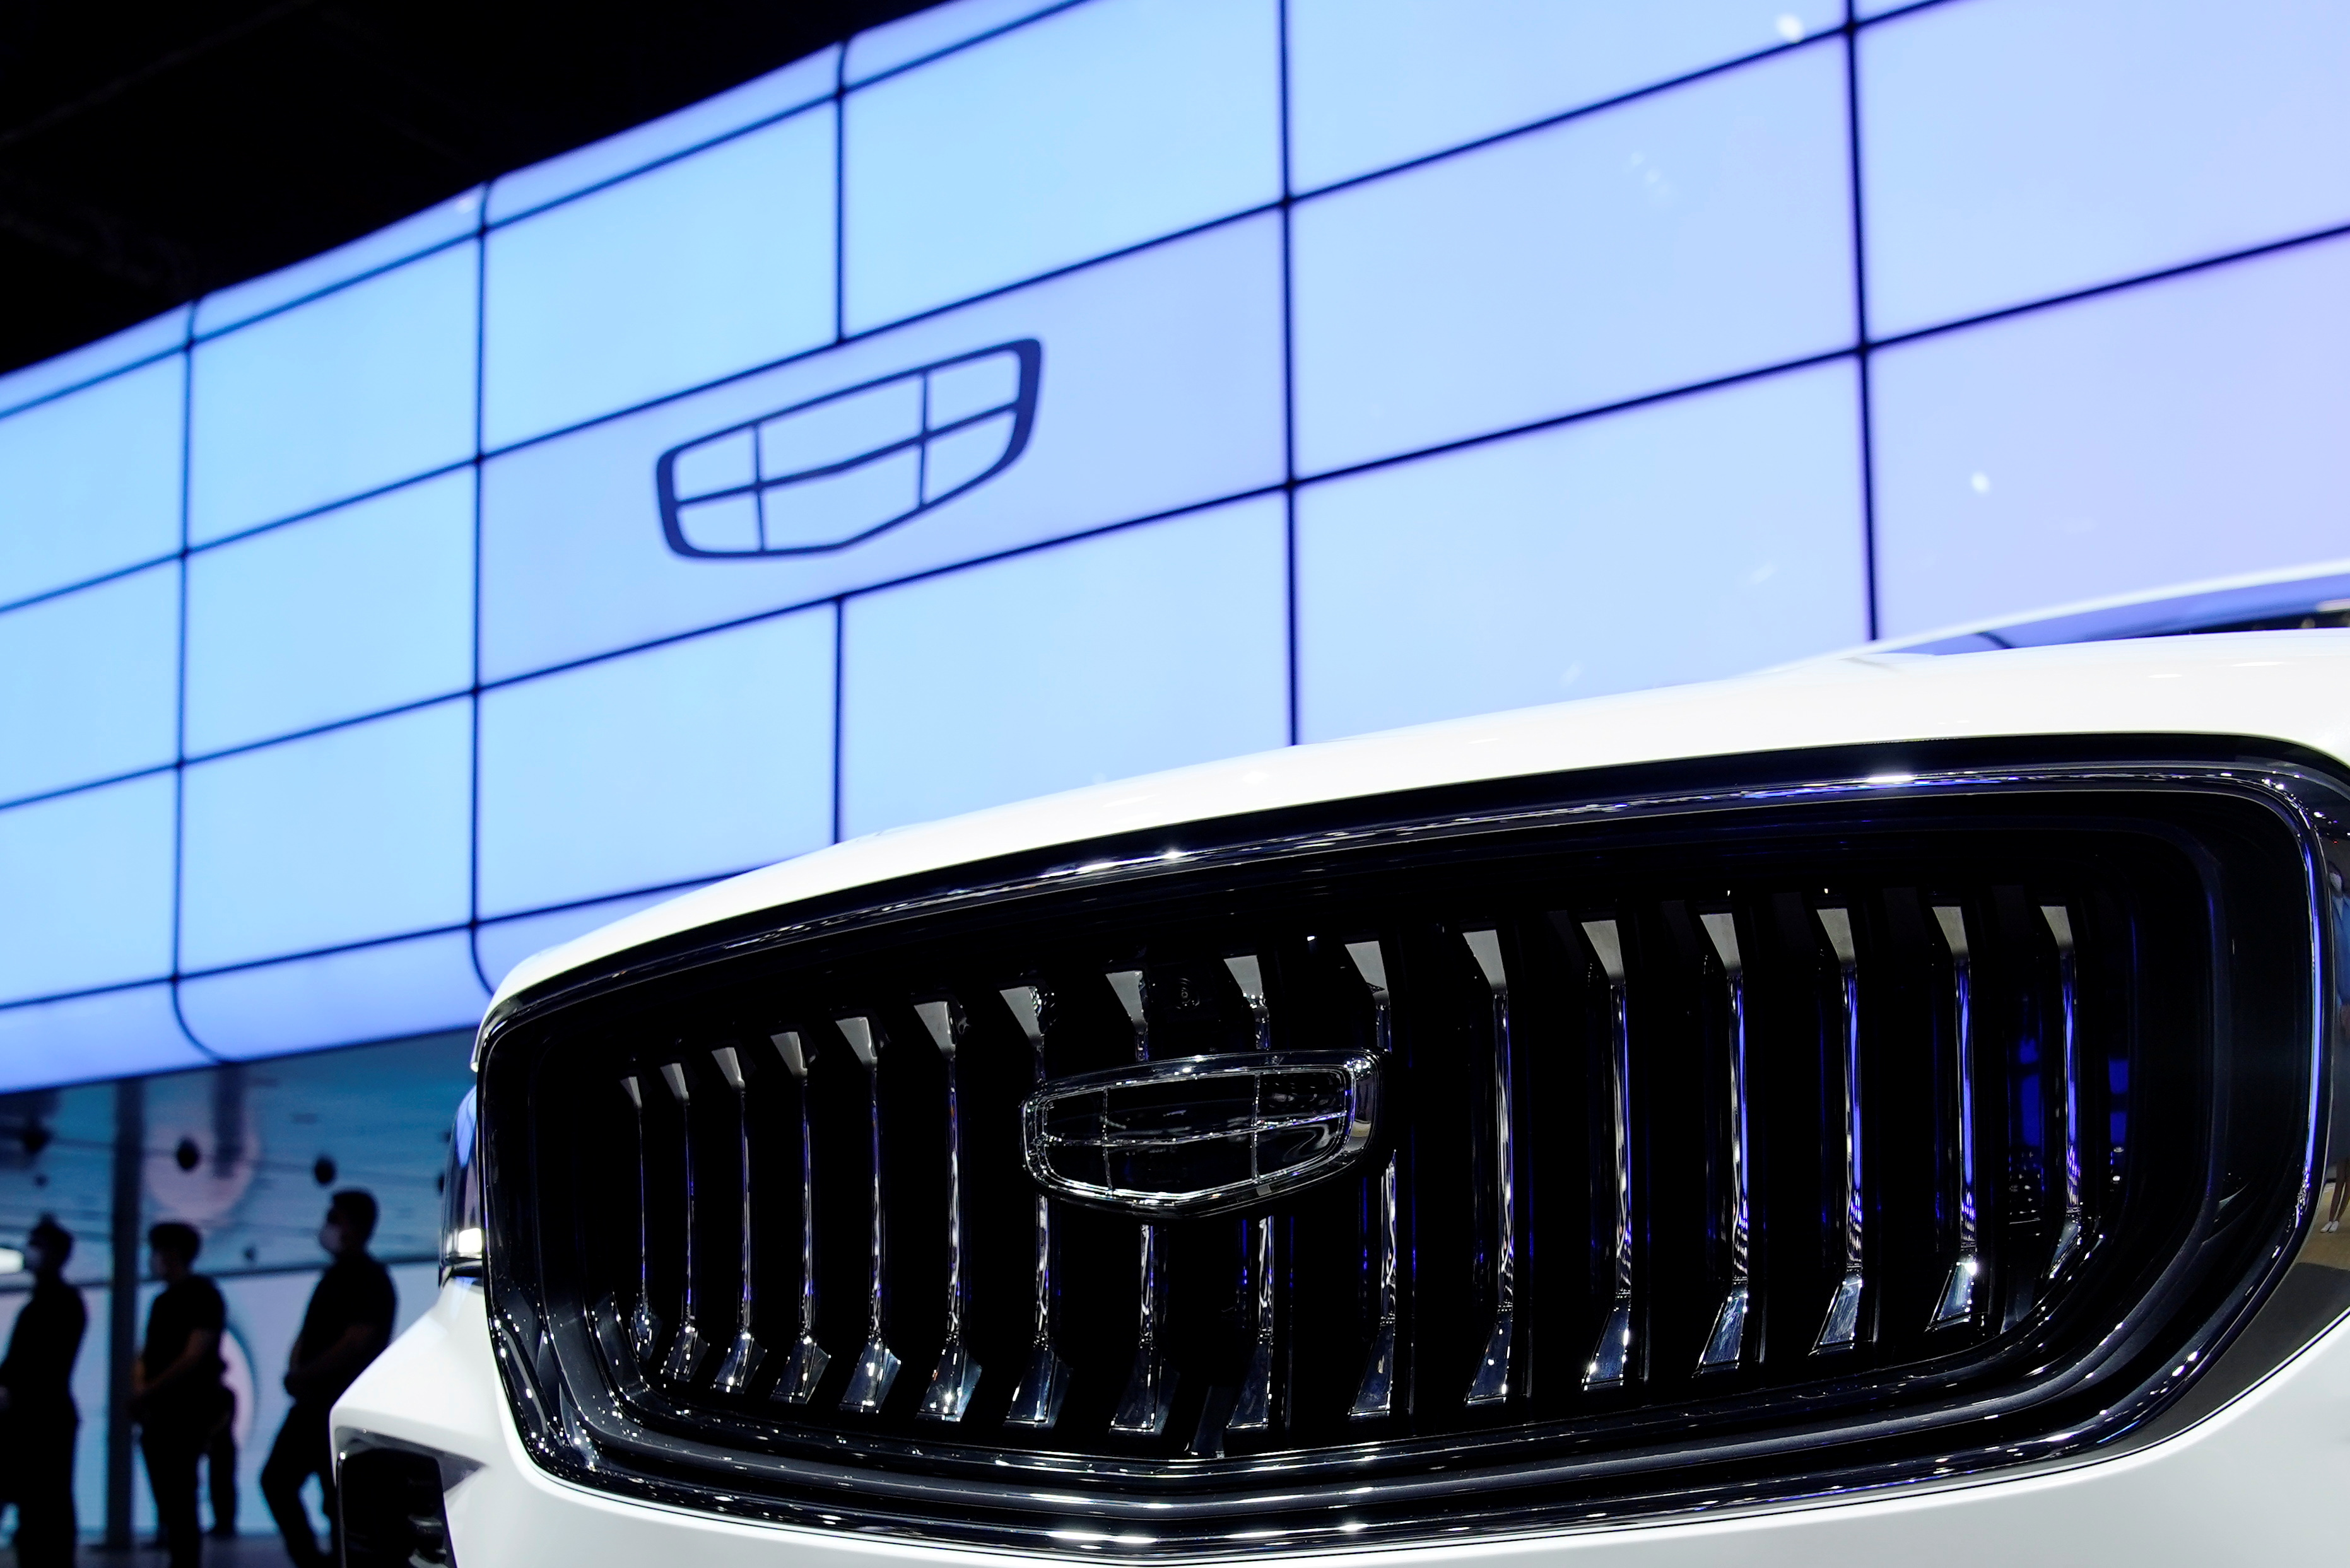 The Geely logo is seen on its vehicle during a media day for the Auto Shanghai show in Shanghai, China April 19, 2021. REUTERS/Aly Song